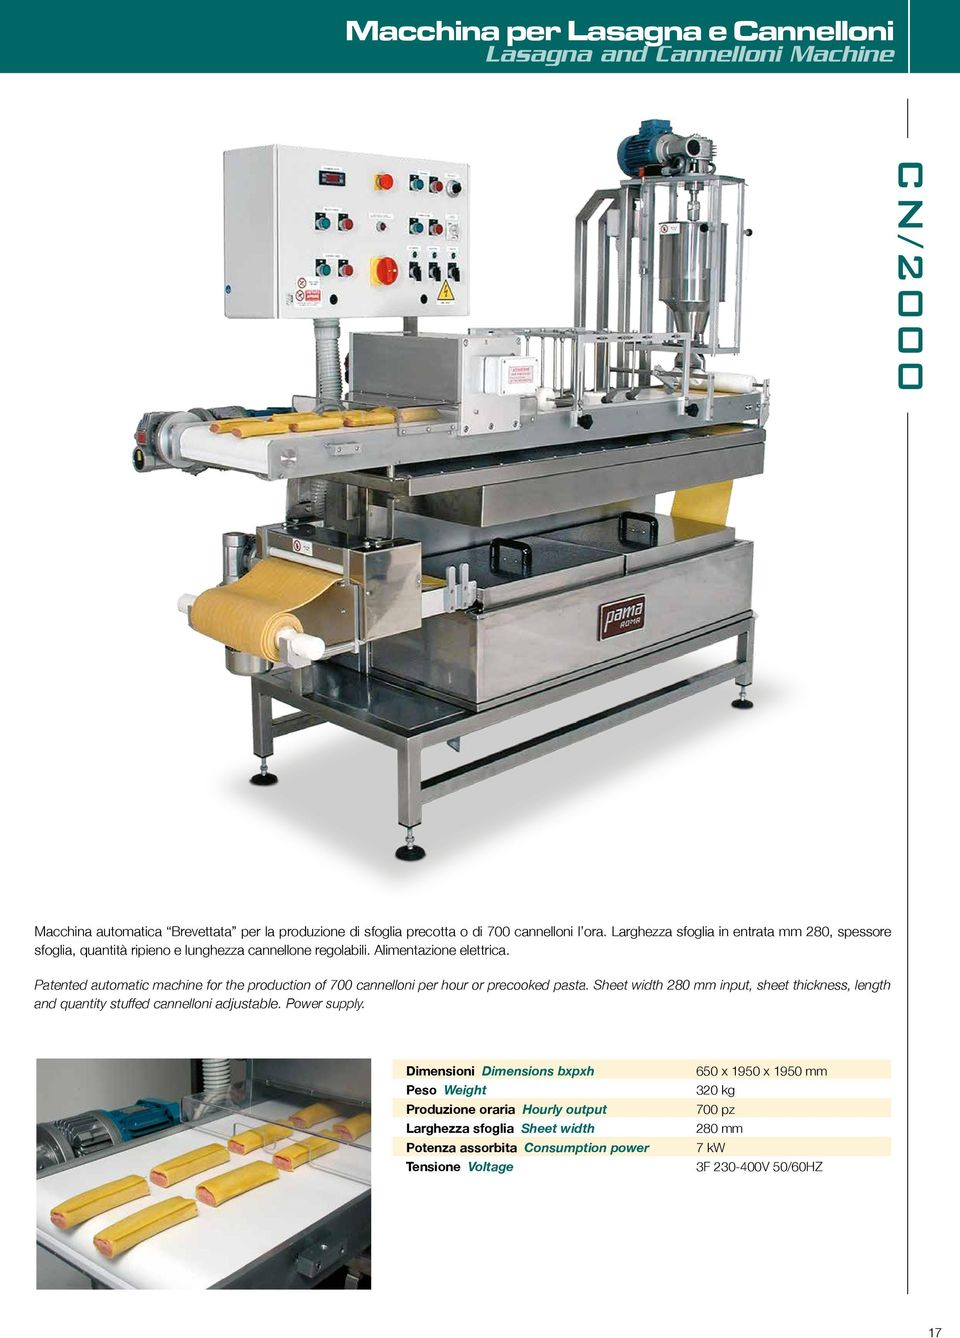 Patented automatic machine for the production of 700 cannelloni per hour or precooked pasta.